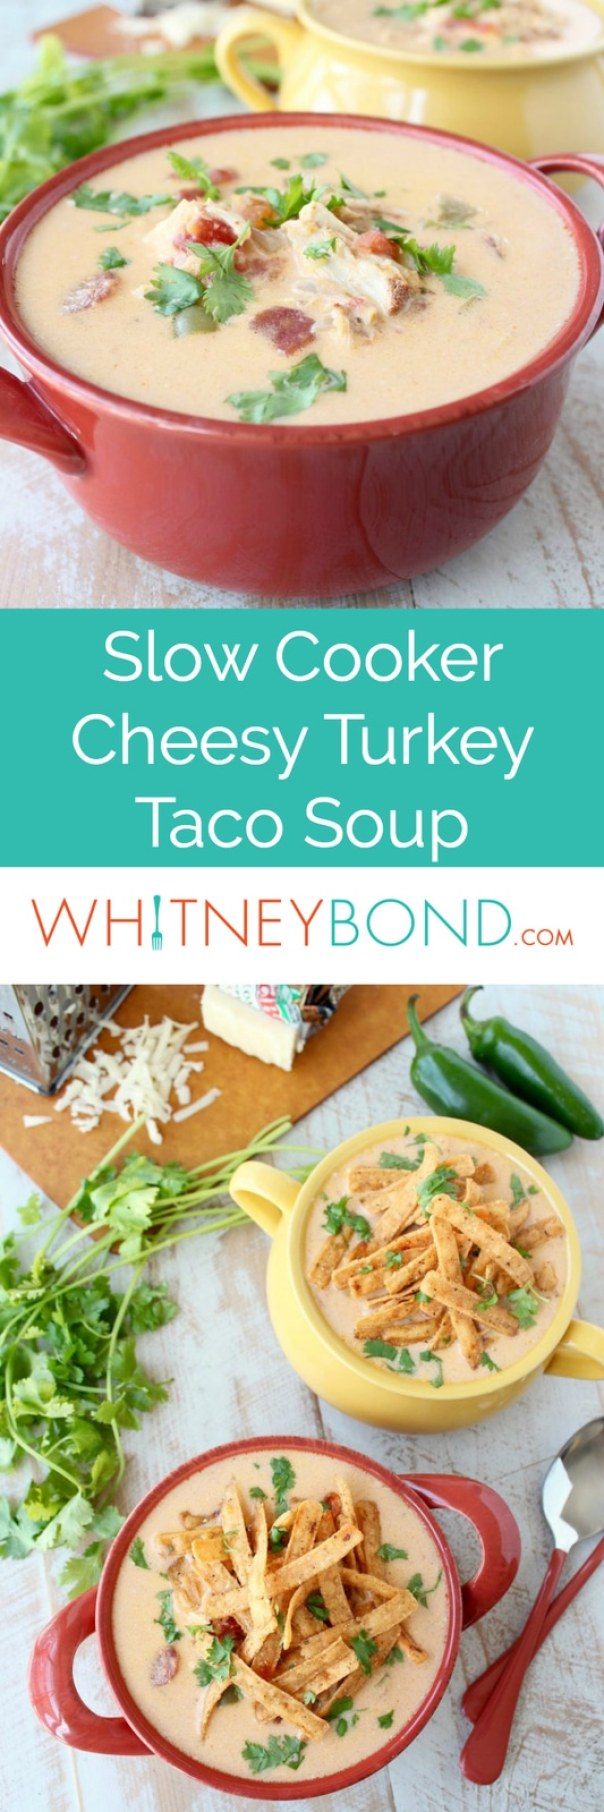 Slow Cooker Cheesy Turkey Taco Soup Recipe